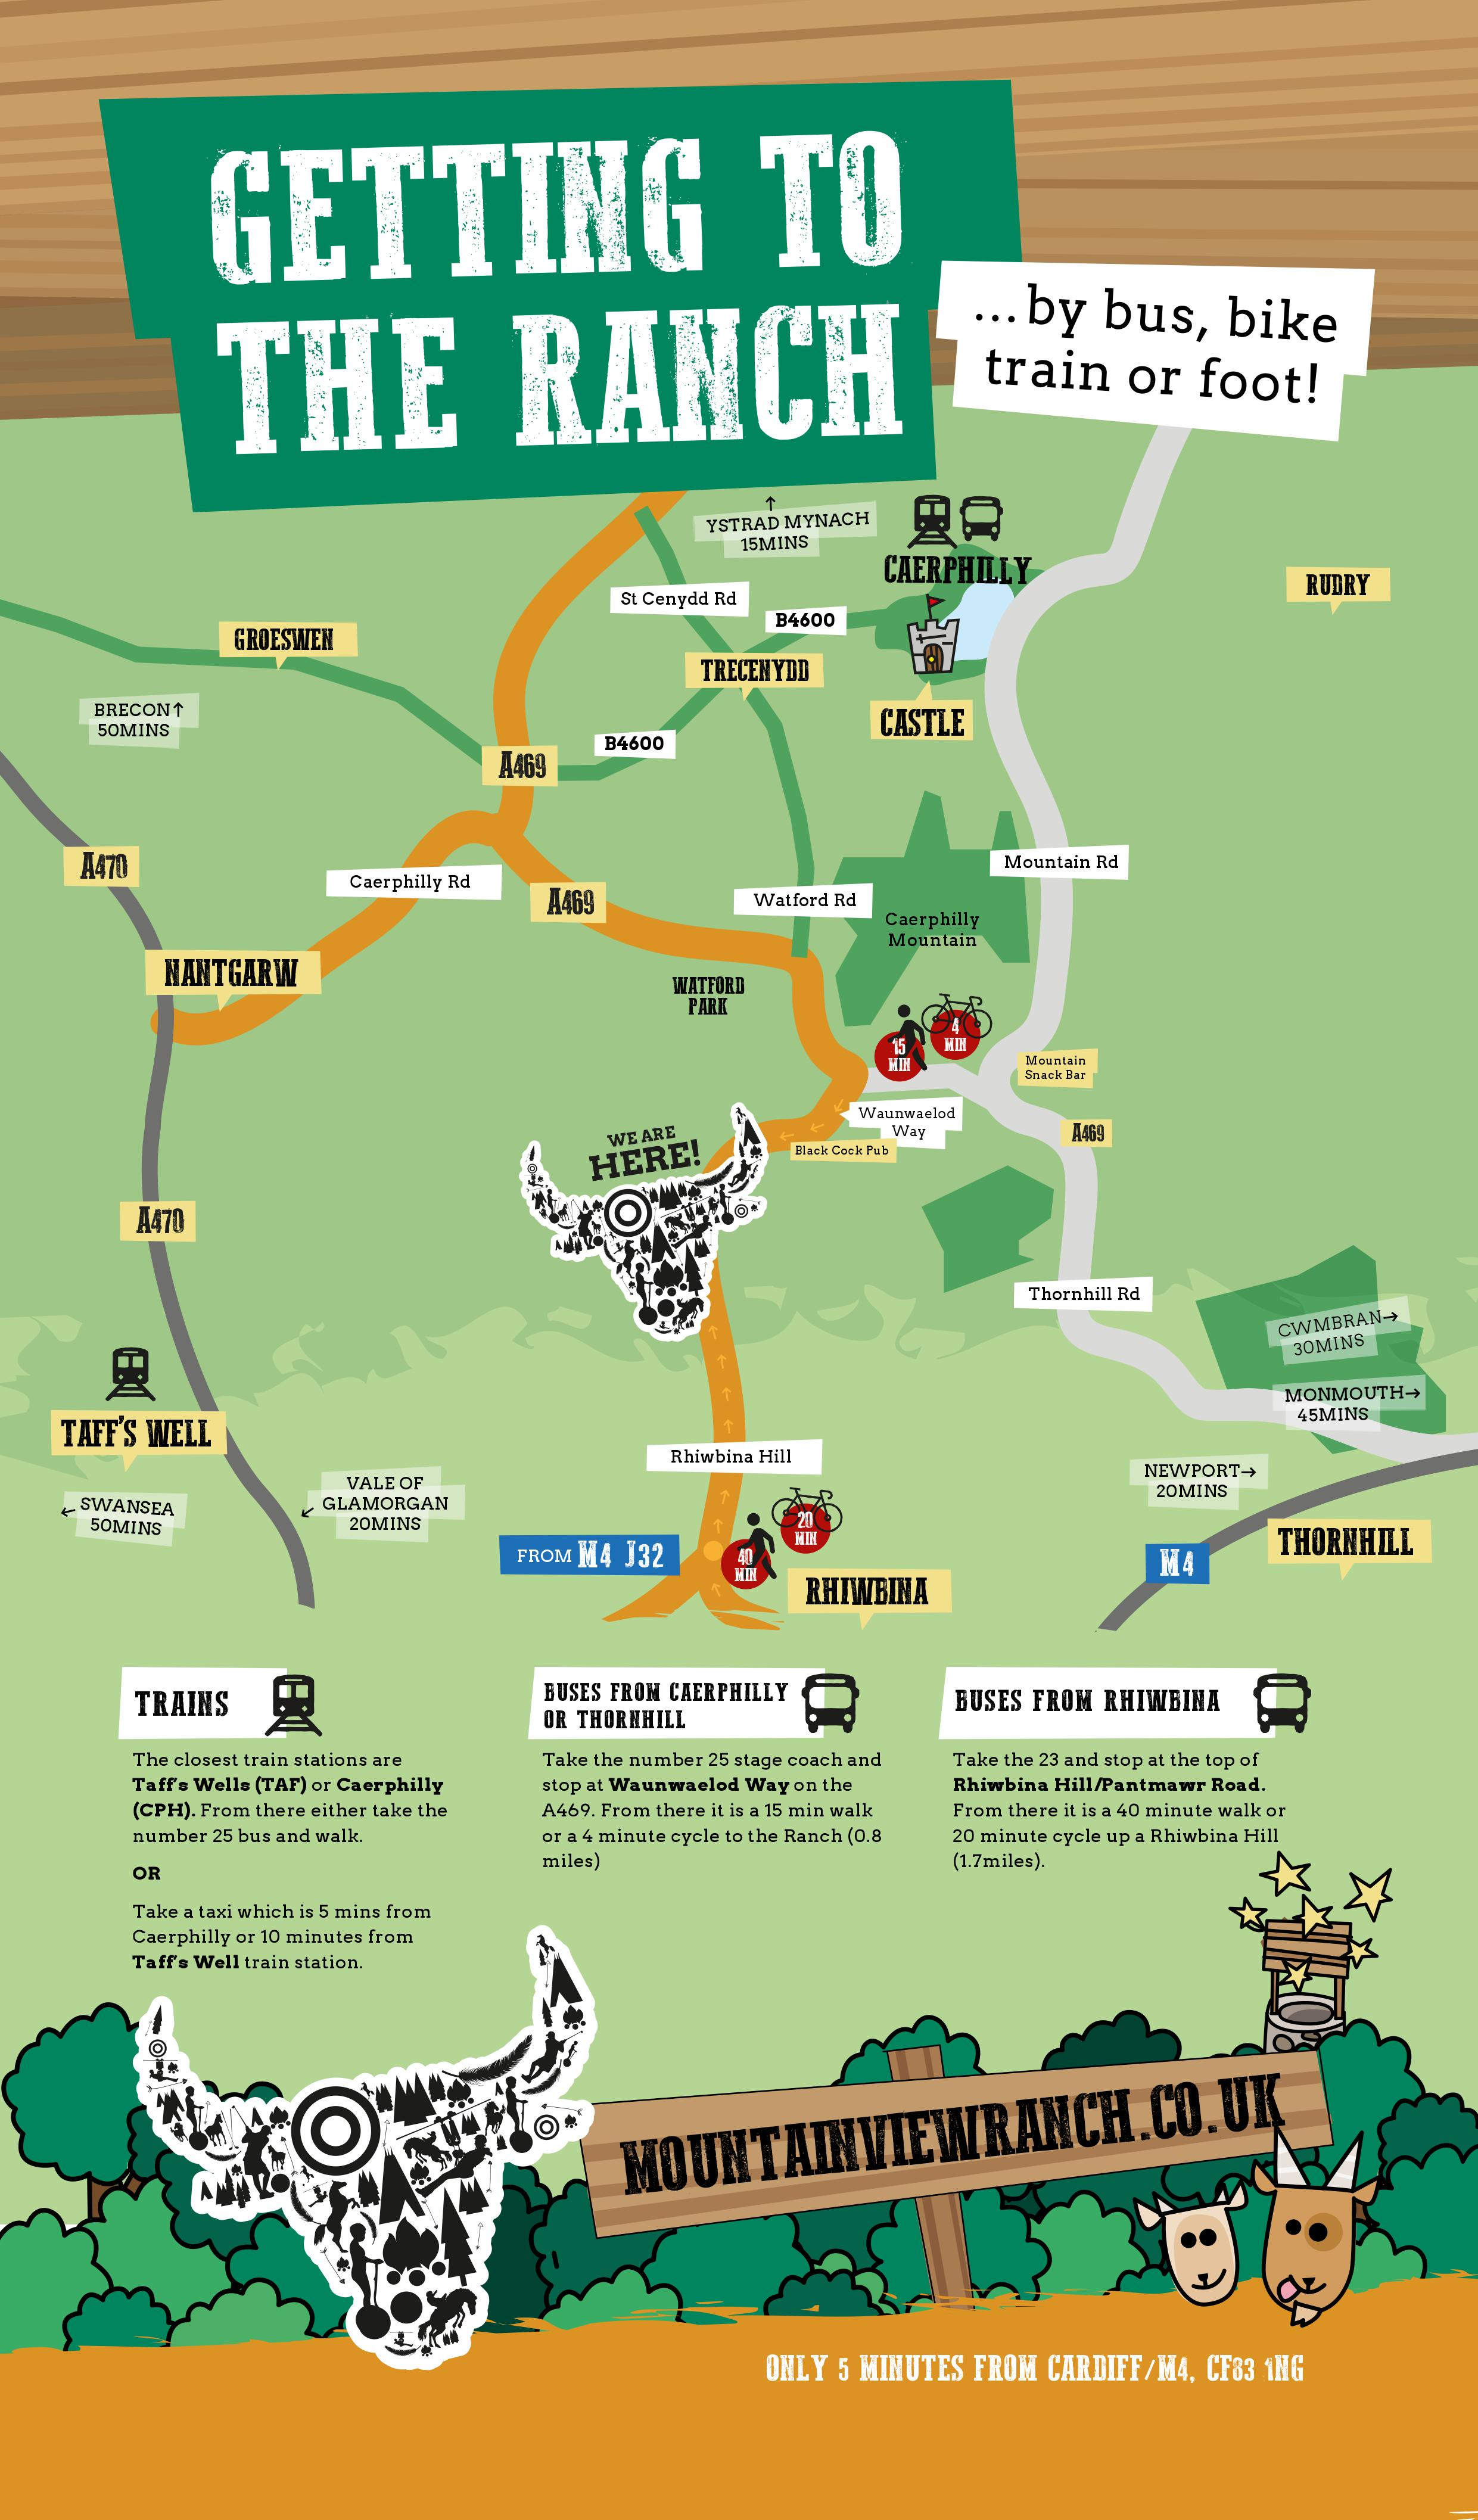 - GETTING TO THE RANCH BY BUS, BIKE, TRAIN OR FOOT!Trains - The closest train stations are Taff's Wells (TAF) or Caerphilly (CPH). From there either take the number 25 bus and walk.ORTake a taxi which is 5 mins from Caerphilly or 10 minutes from Taff's Well train station.Buses from Caerphilly or Thornhill/CardiffTake the number 25 stage coach and stop at Waunwaelod Way on the A469. From there it is a 15 min walk or a 4 minute cycle to the Ranch (0.8 miles).Buses from Rhiwbina/CardiffTake the 23 and stop at the top of Rhiwbina Hill/Pantmawr Road. From there it is a 40 minute walk or 20 minute cycle up a Rhiwbina Hill (1.7miles).IMPORTANT NOTESIf walking please take extreme care as there are narrow country lanes and not suitable for pushchairs or young children.